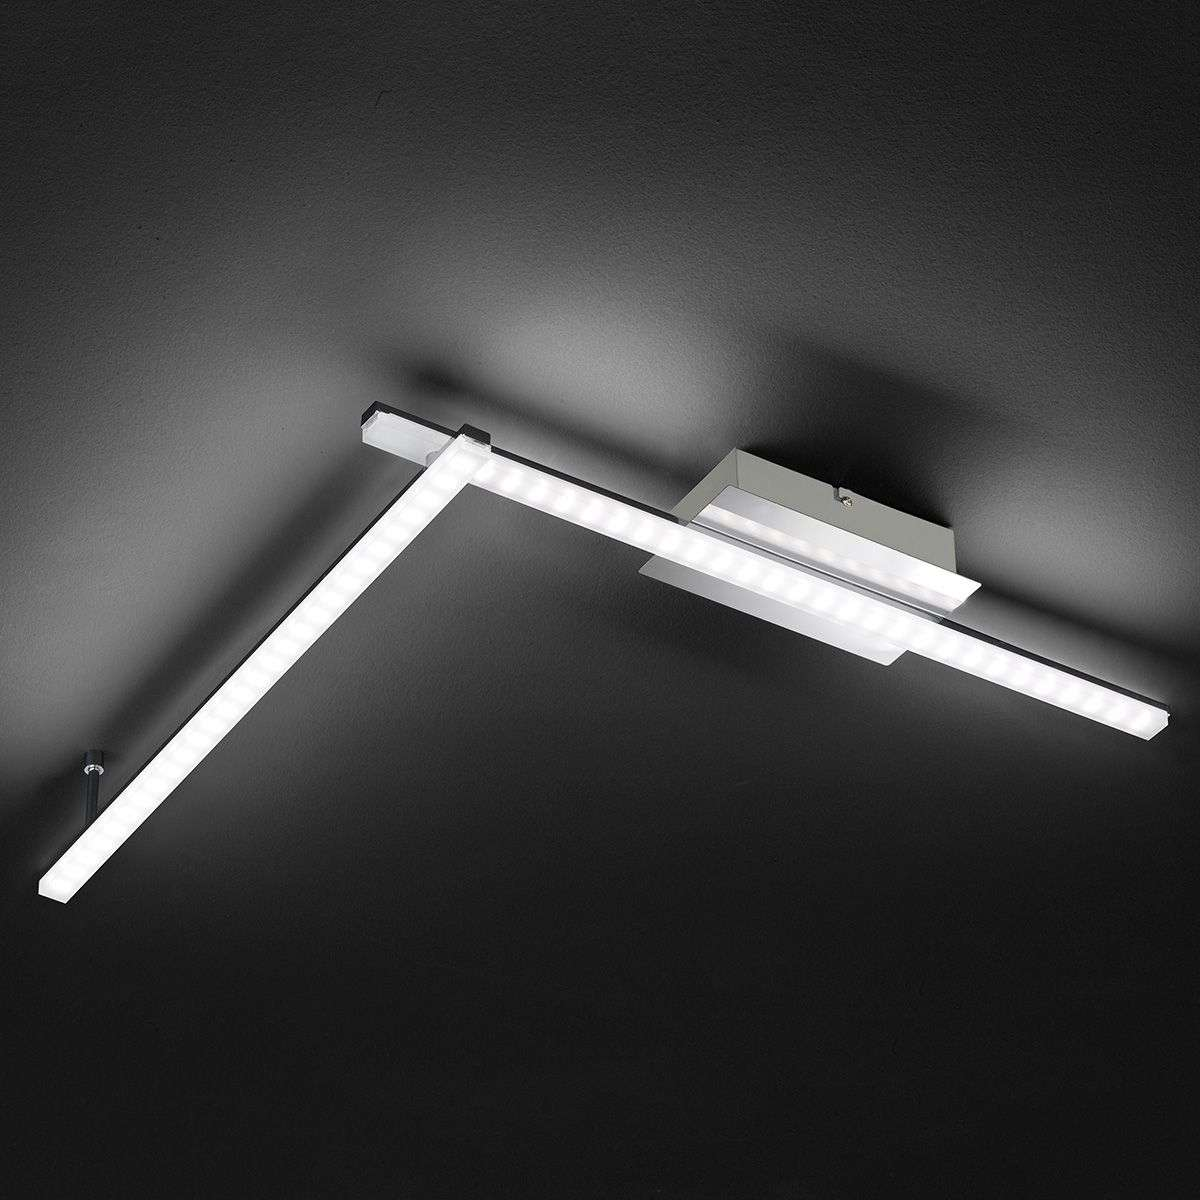 clay modern led ceiling light. Black Bedroom Furniture Sets. Home Design Ideas